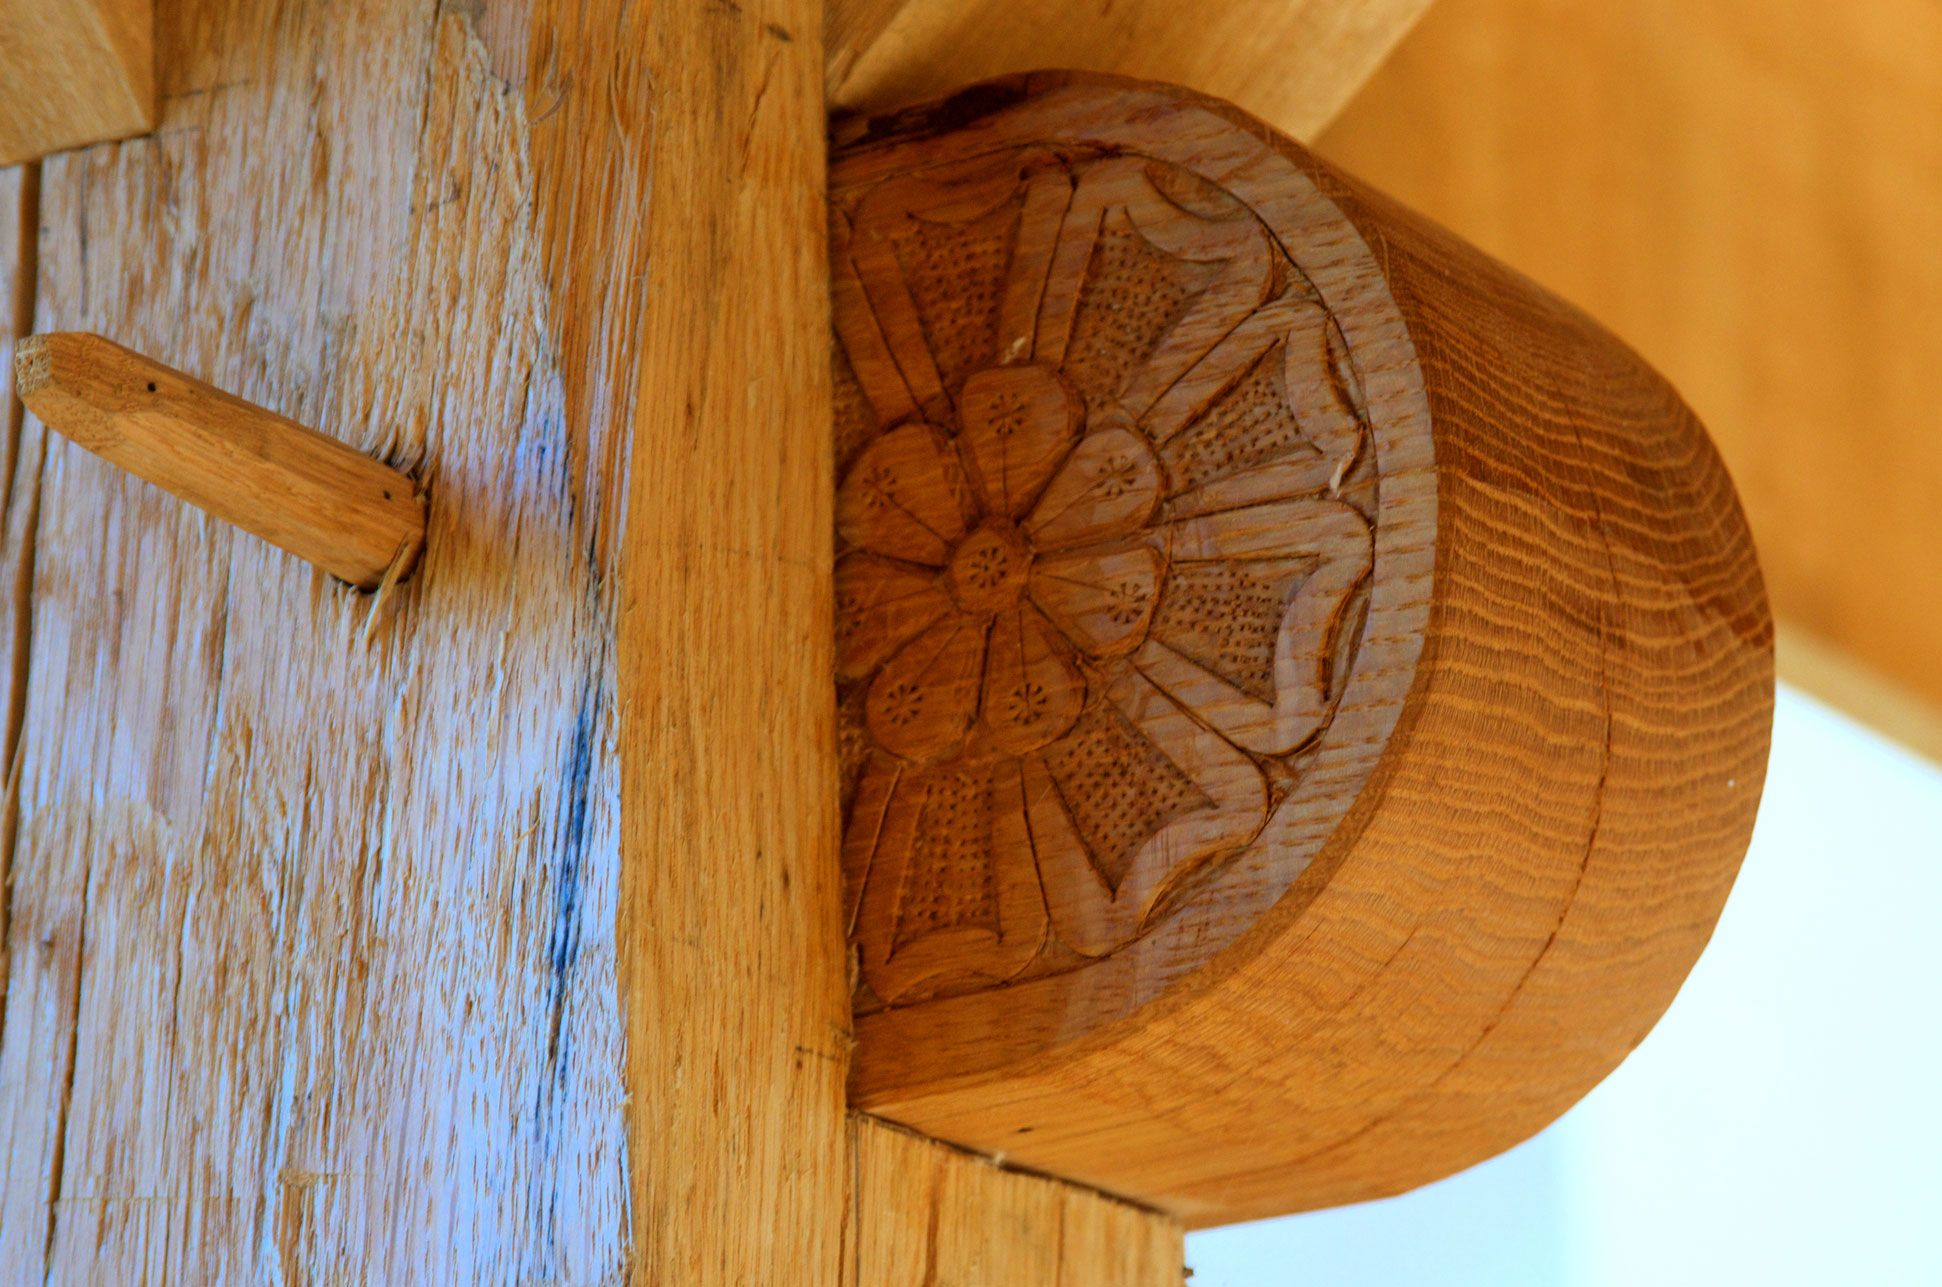 Close up of woodwork on breezeway connecting Manor House to Guest House, Mirbeau Inn & Spa at The Pinehills